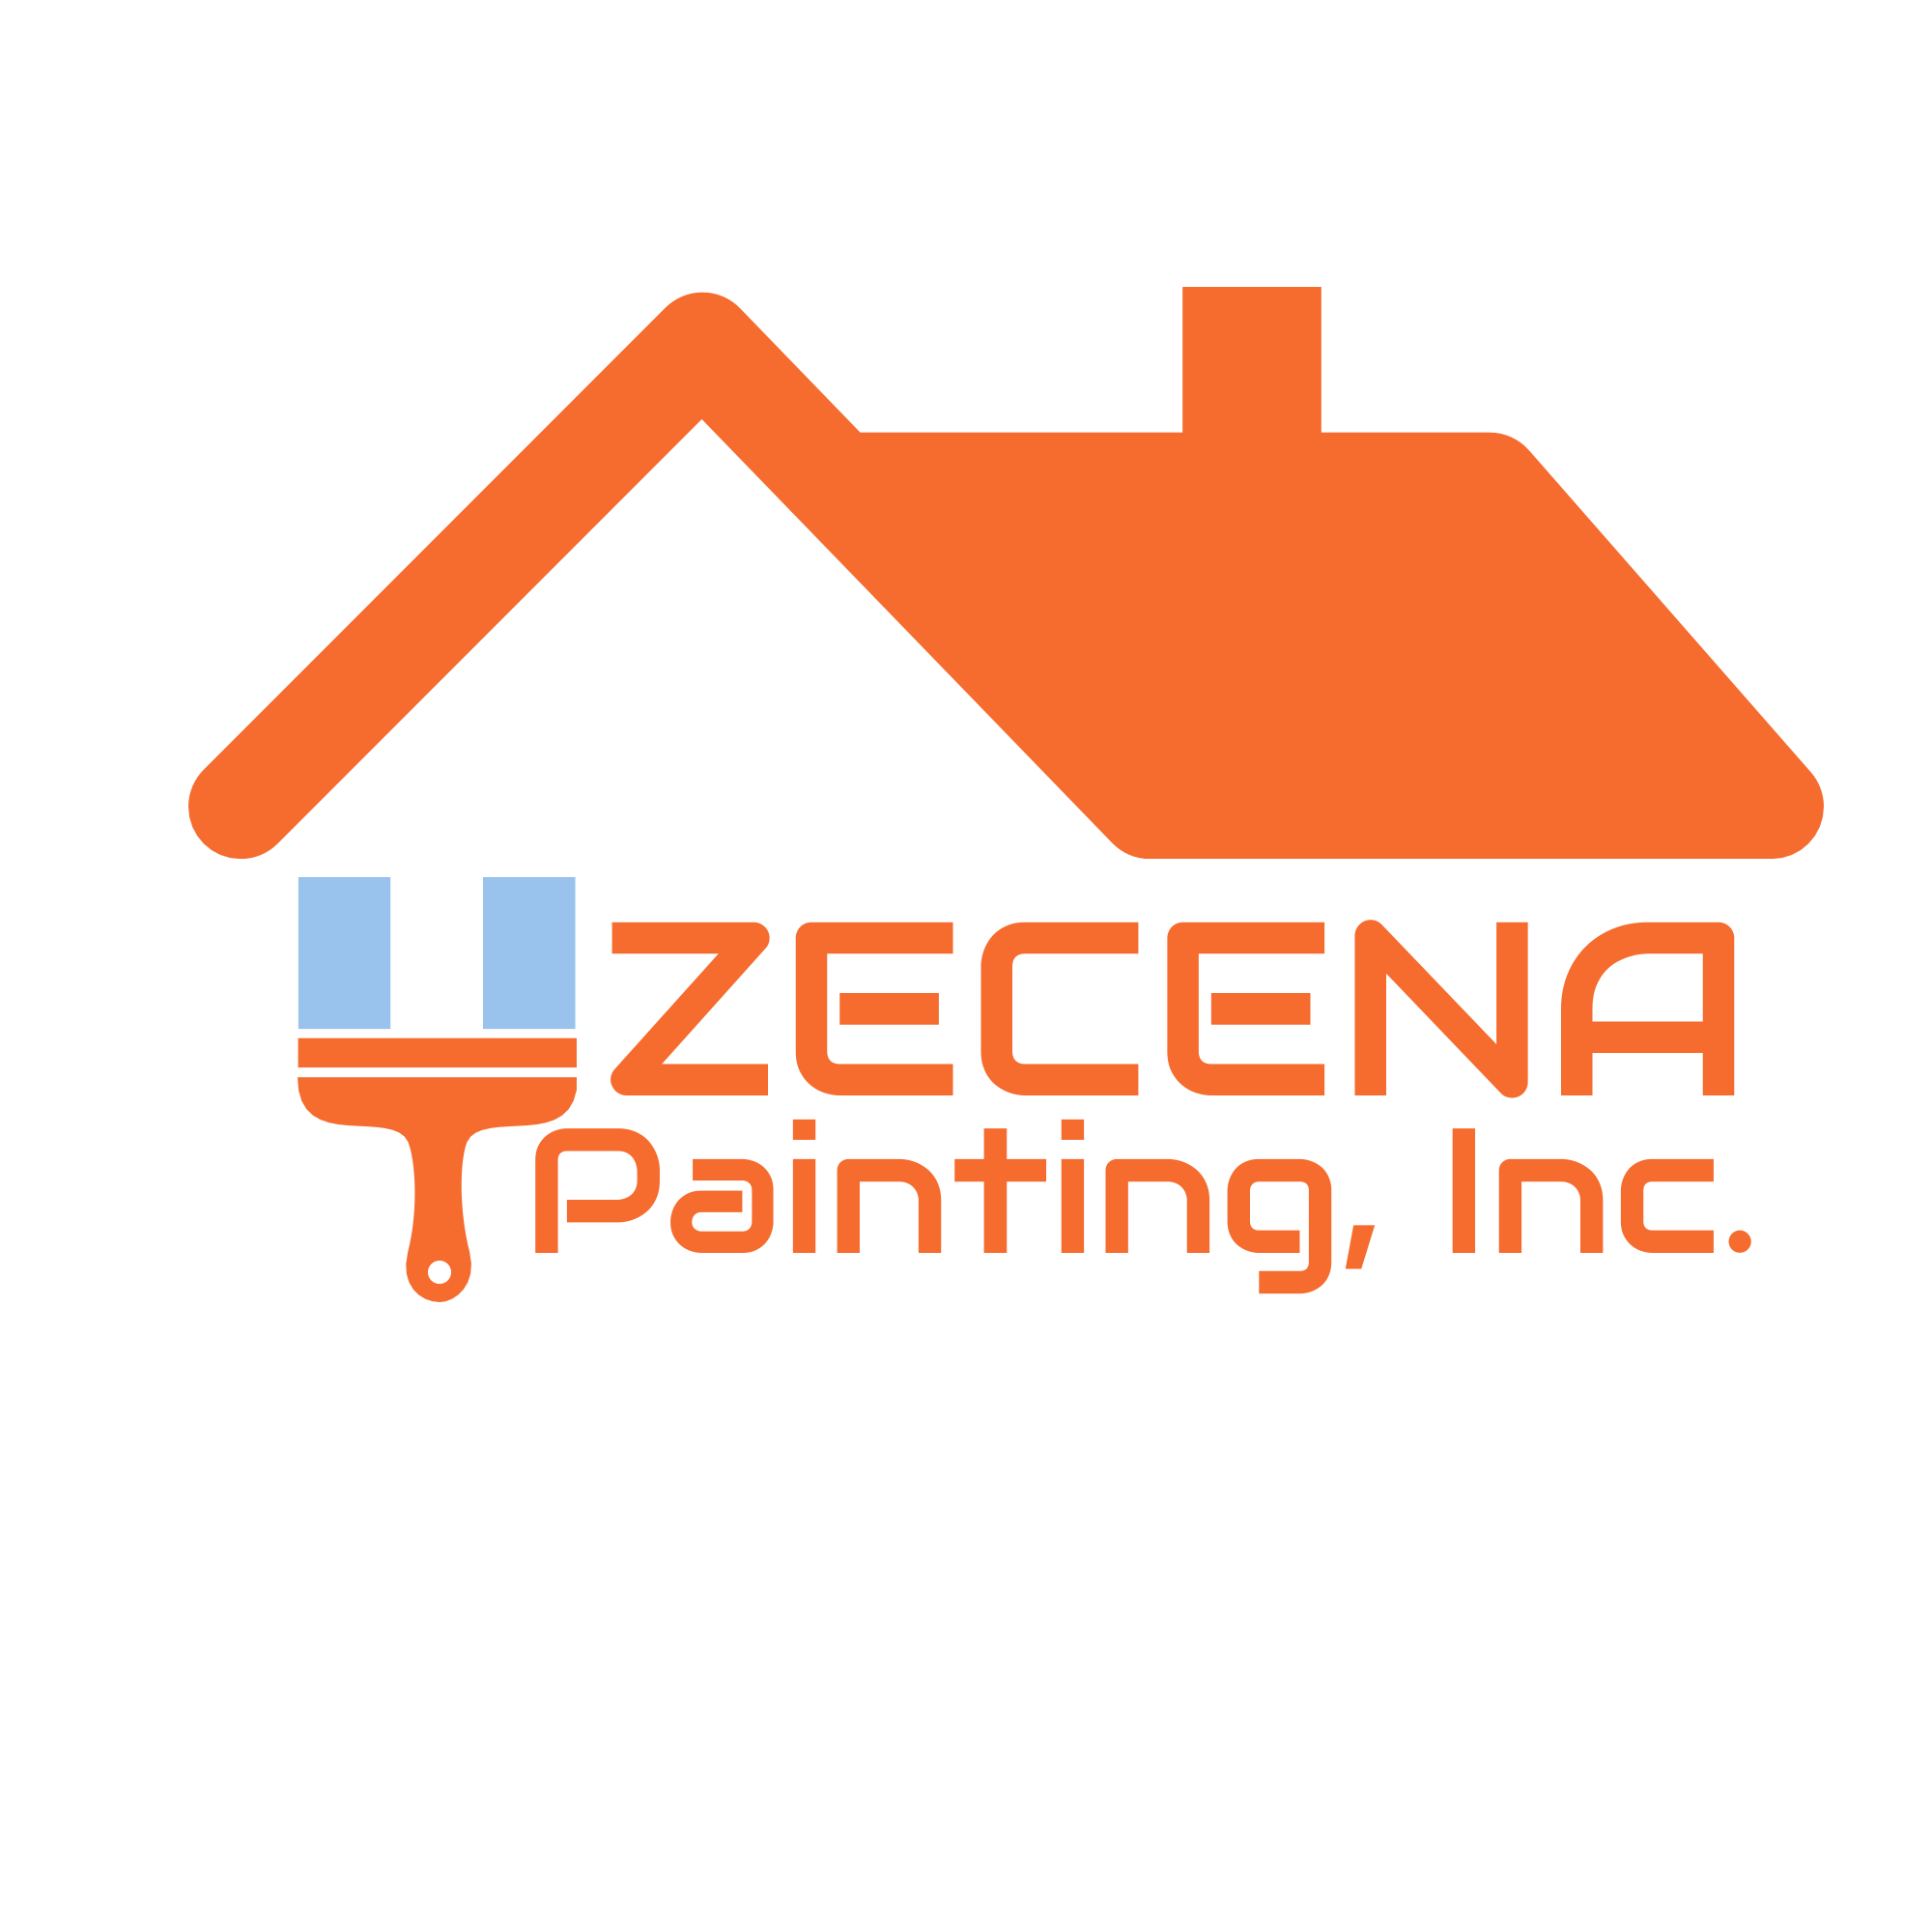 Zecena Painting, Inc